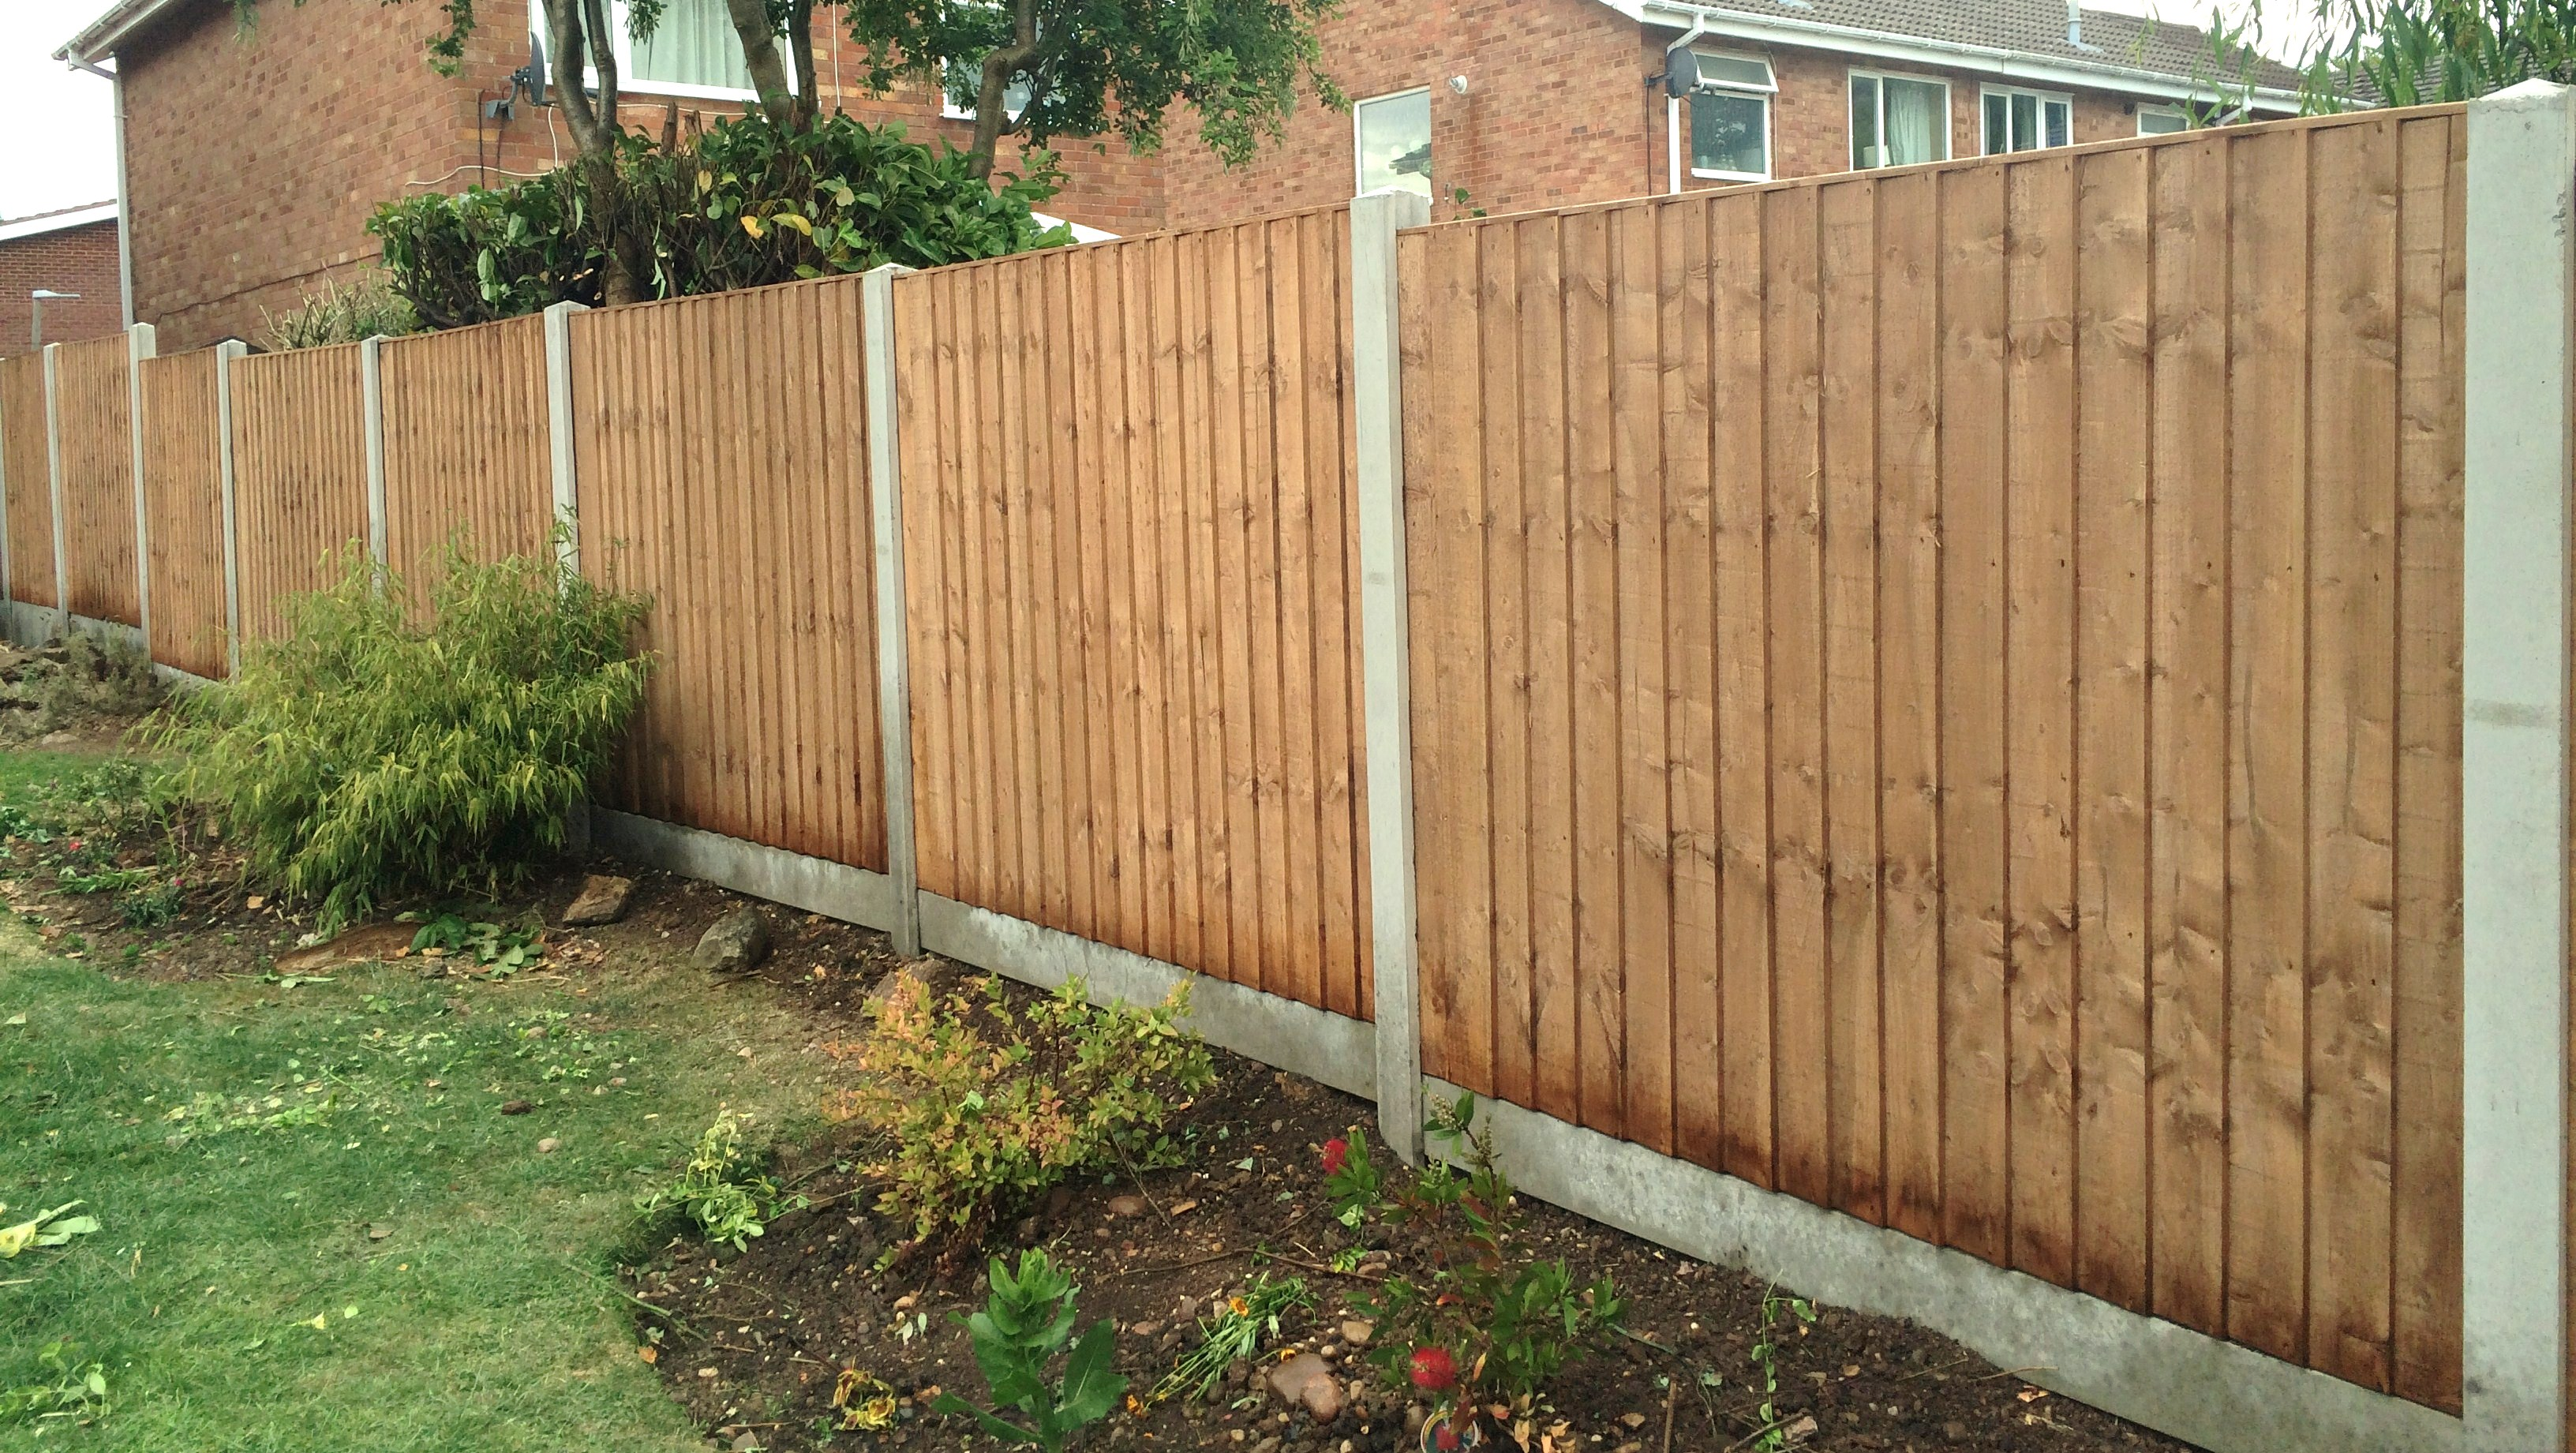 Special Offer 10 Bays Supplied Ed 795 00 Includes Heavy Duty Fence Panels Gravel Boards Concrete Posts